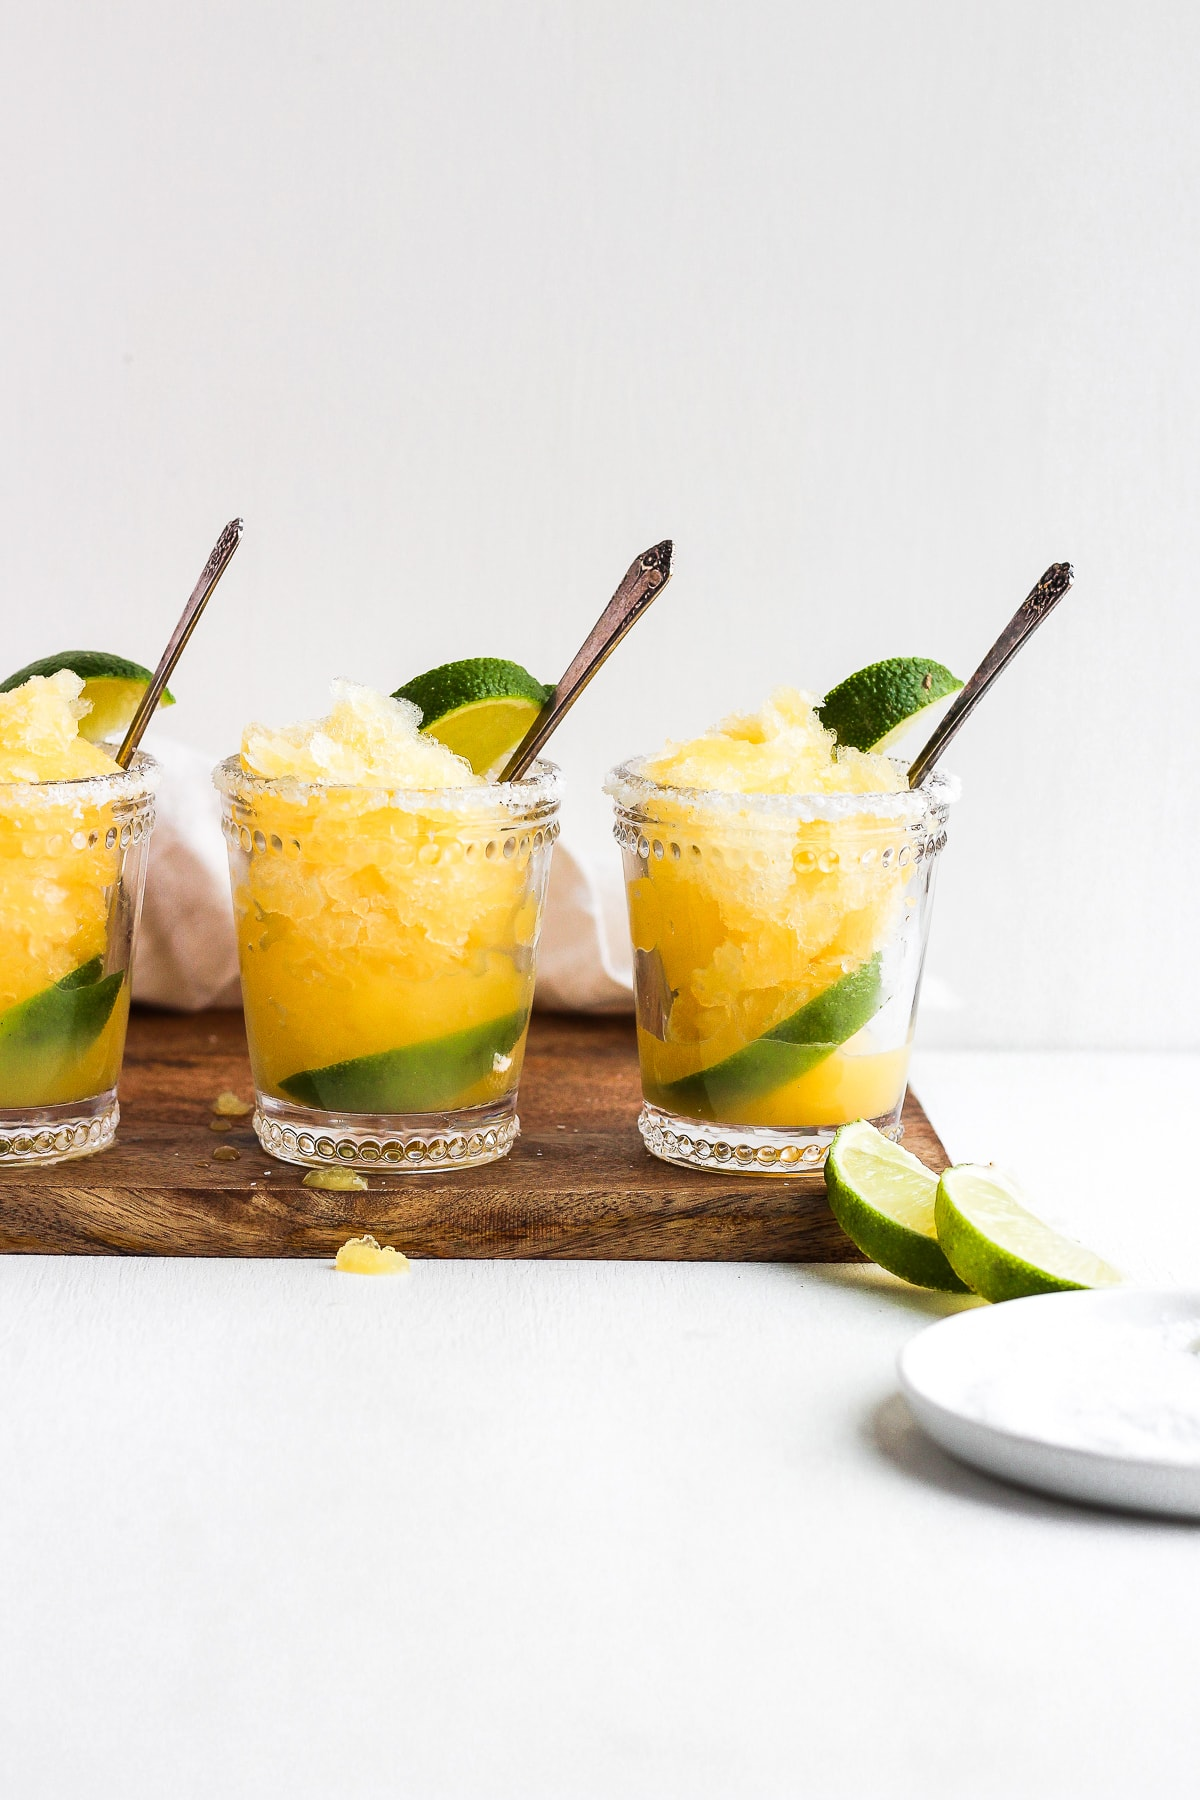 Lemon Lime Citrus Granita - a sweet and simple dessert! #vegan #dairyfree